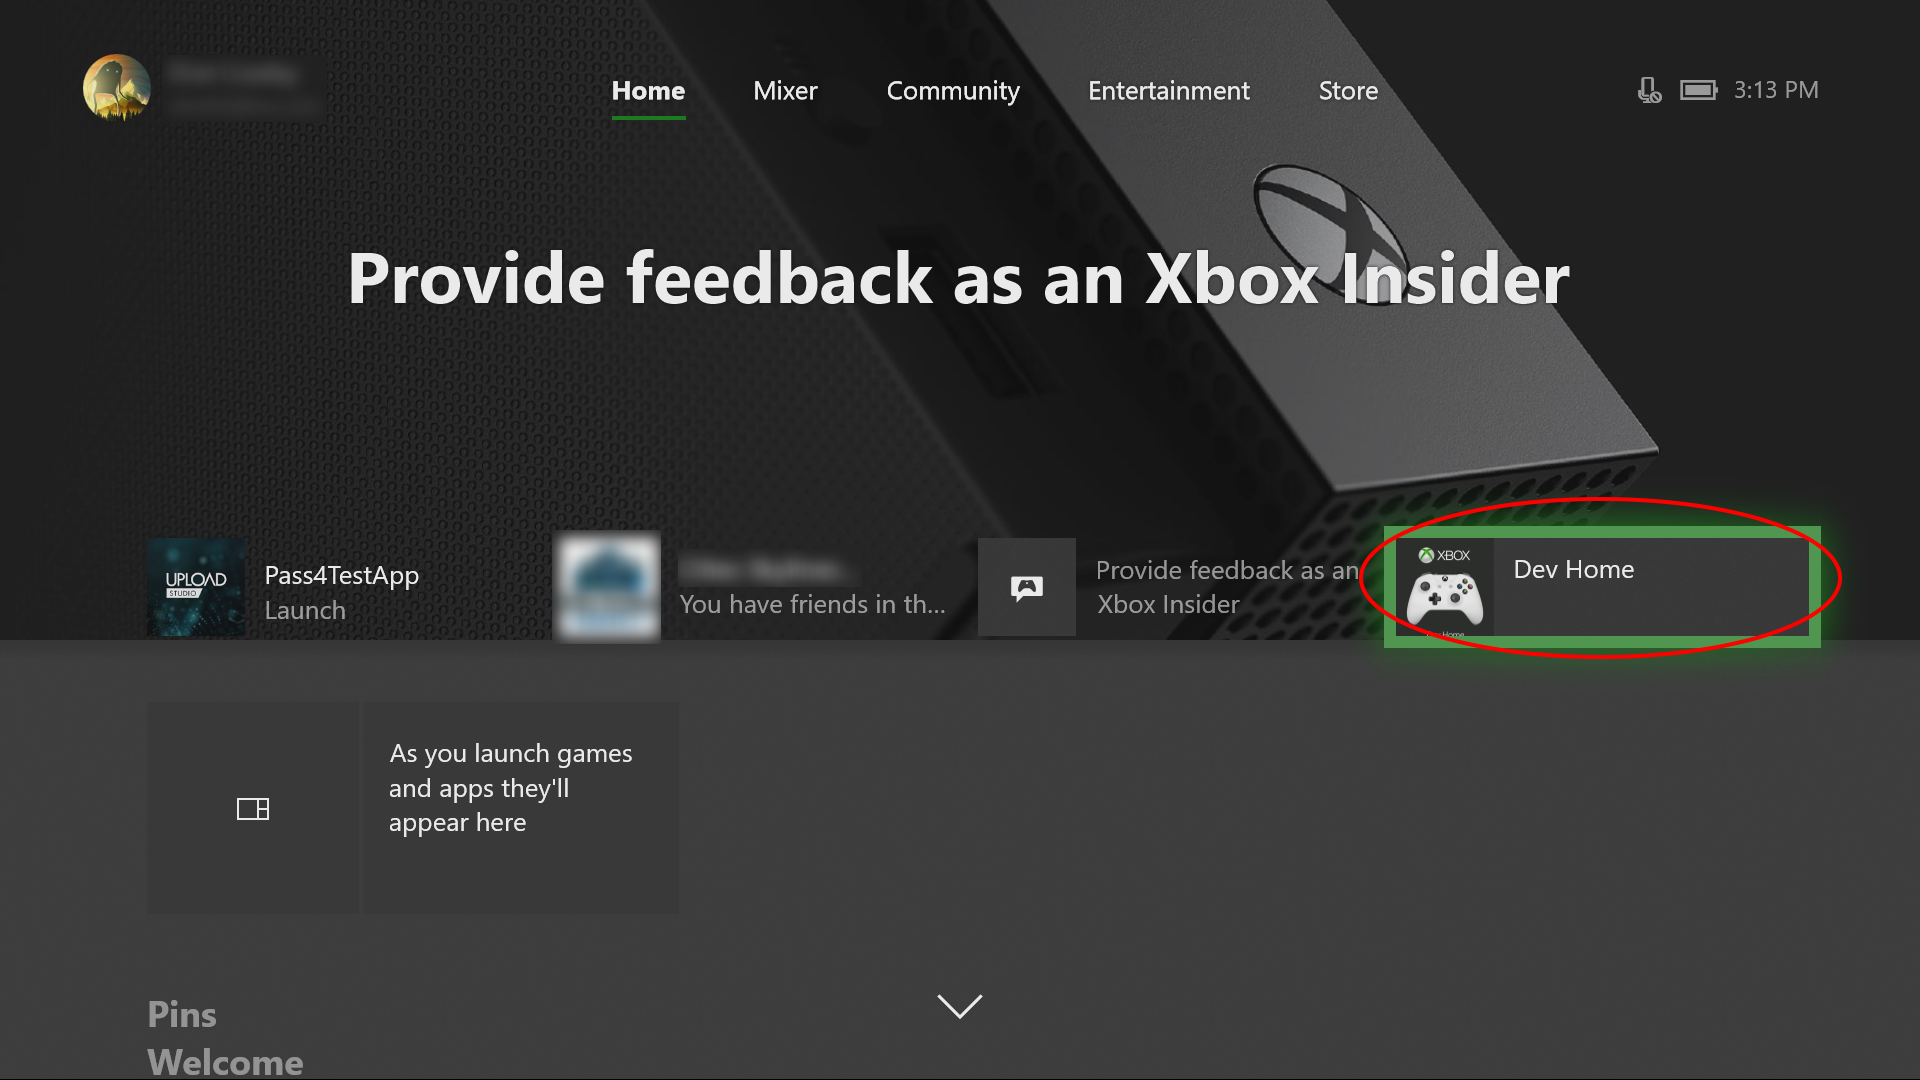 Device Portal for Xbox - Windows UWP applications | Microsoft Docs